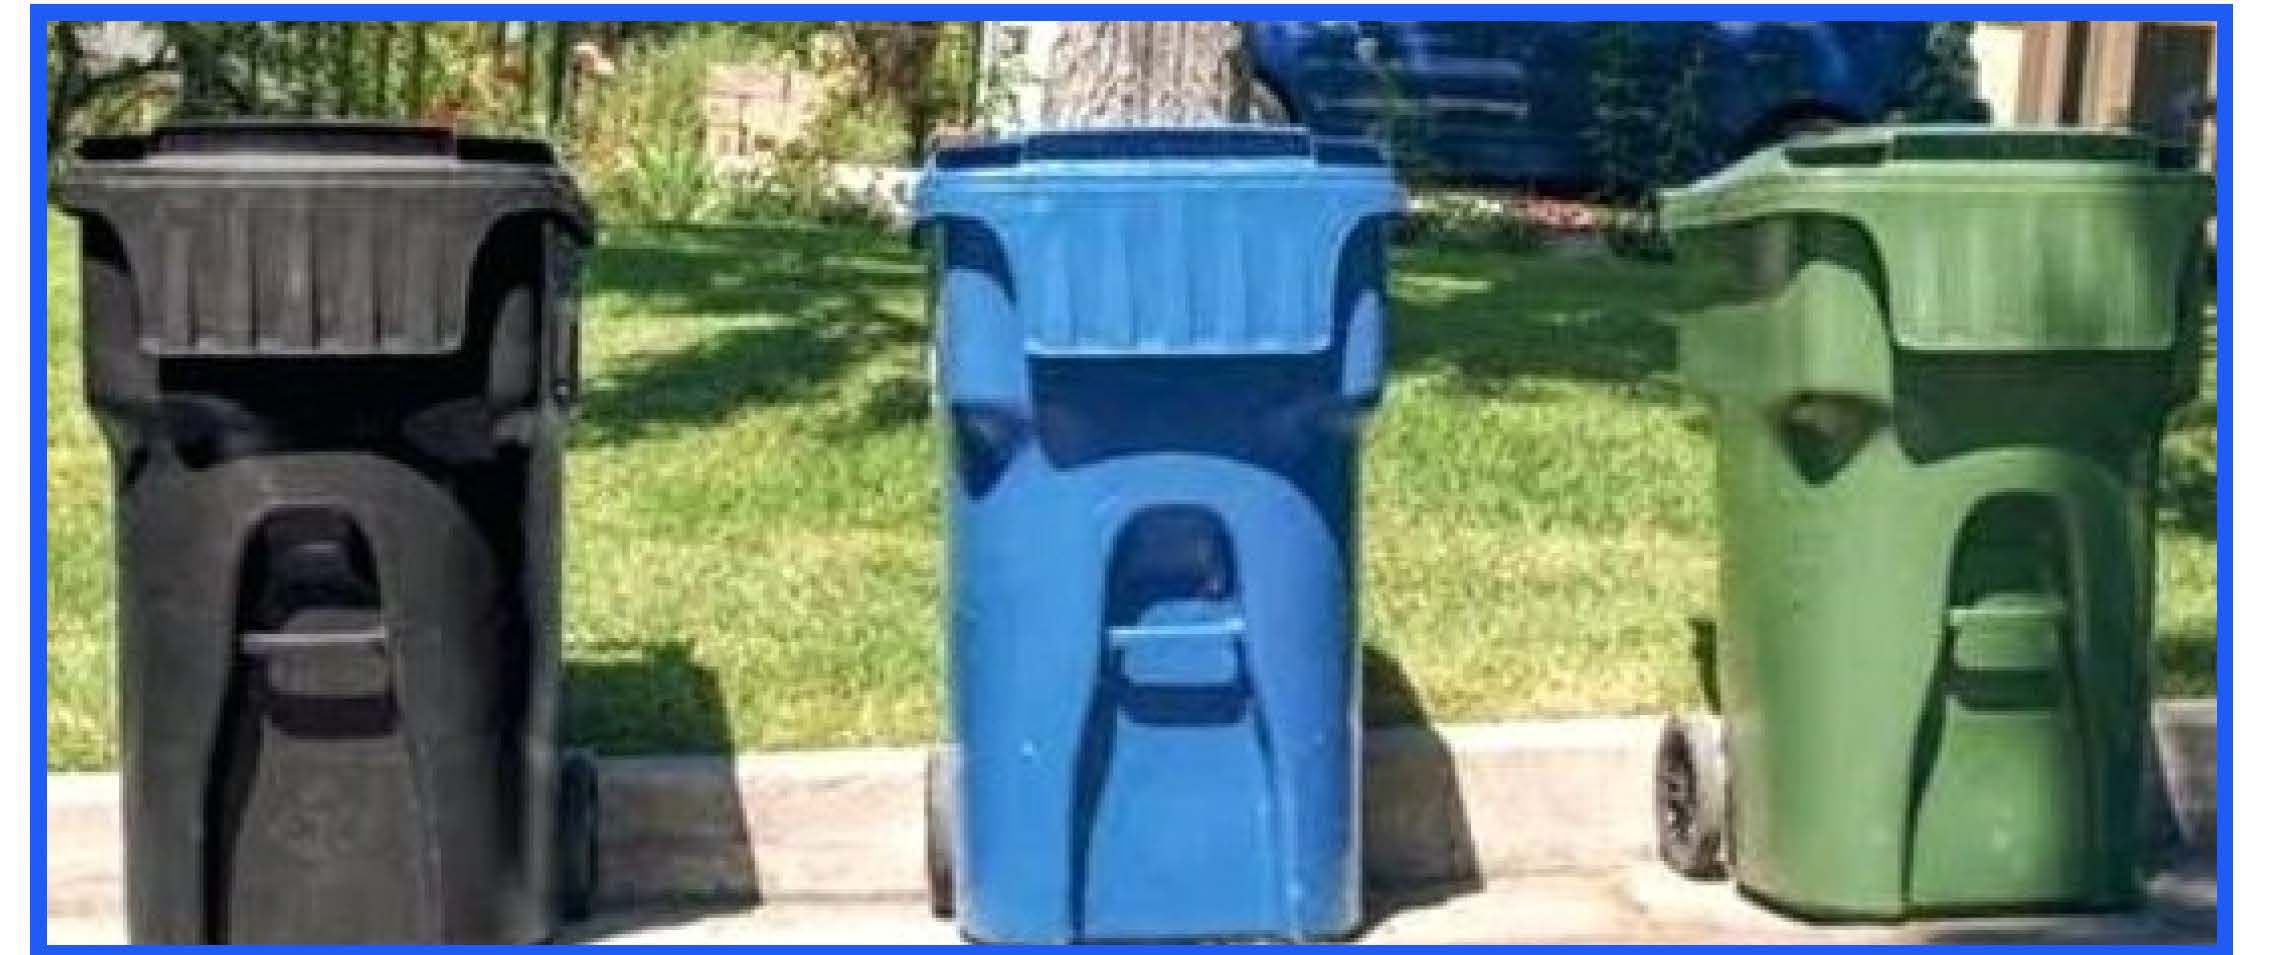 pictures of trash bins